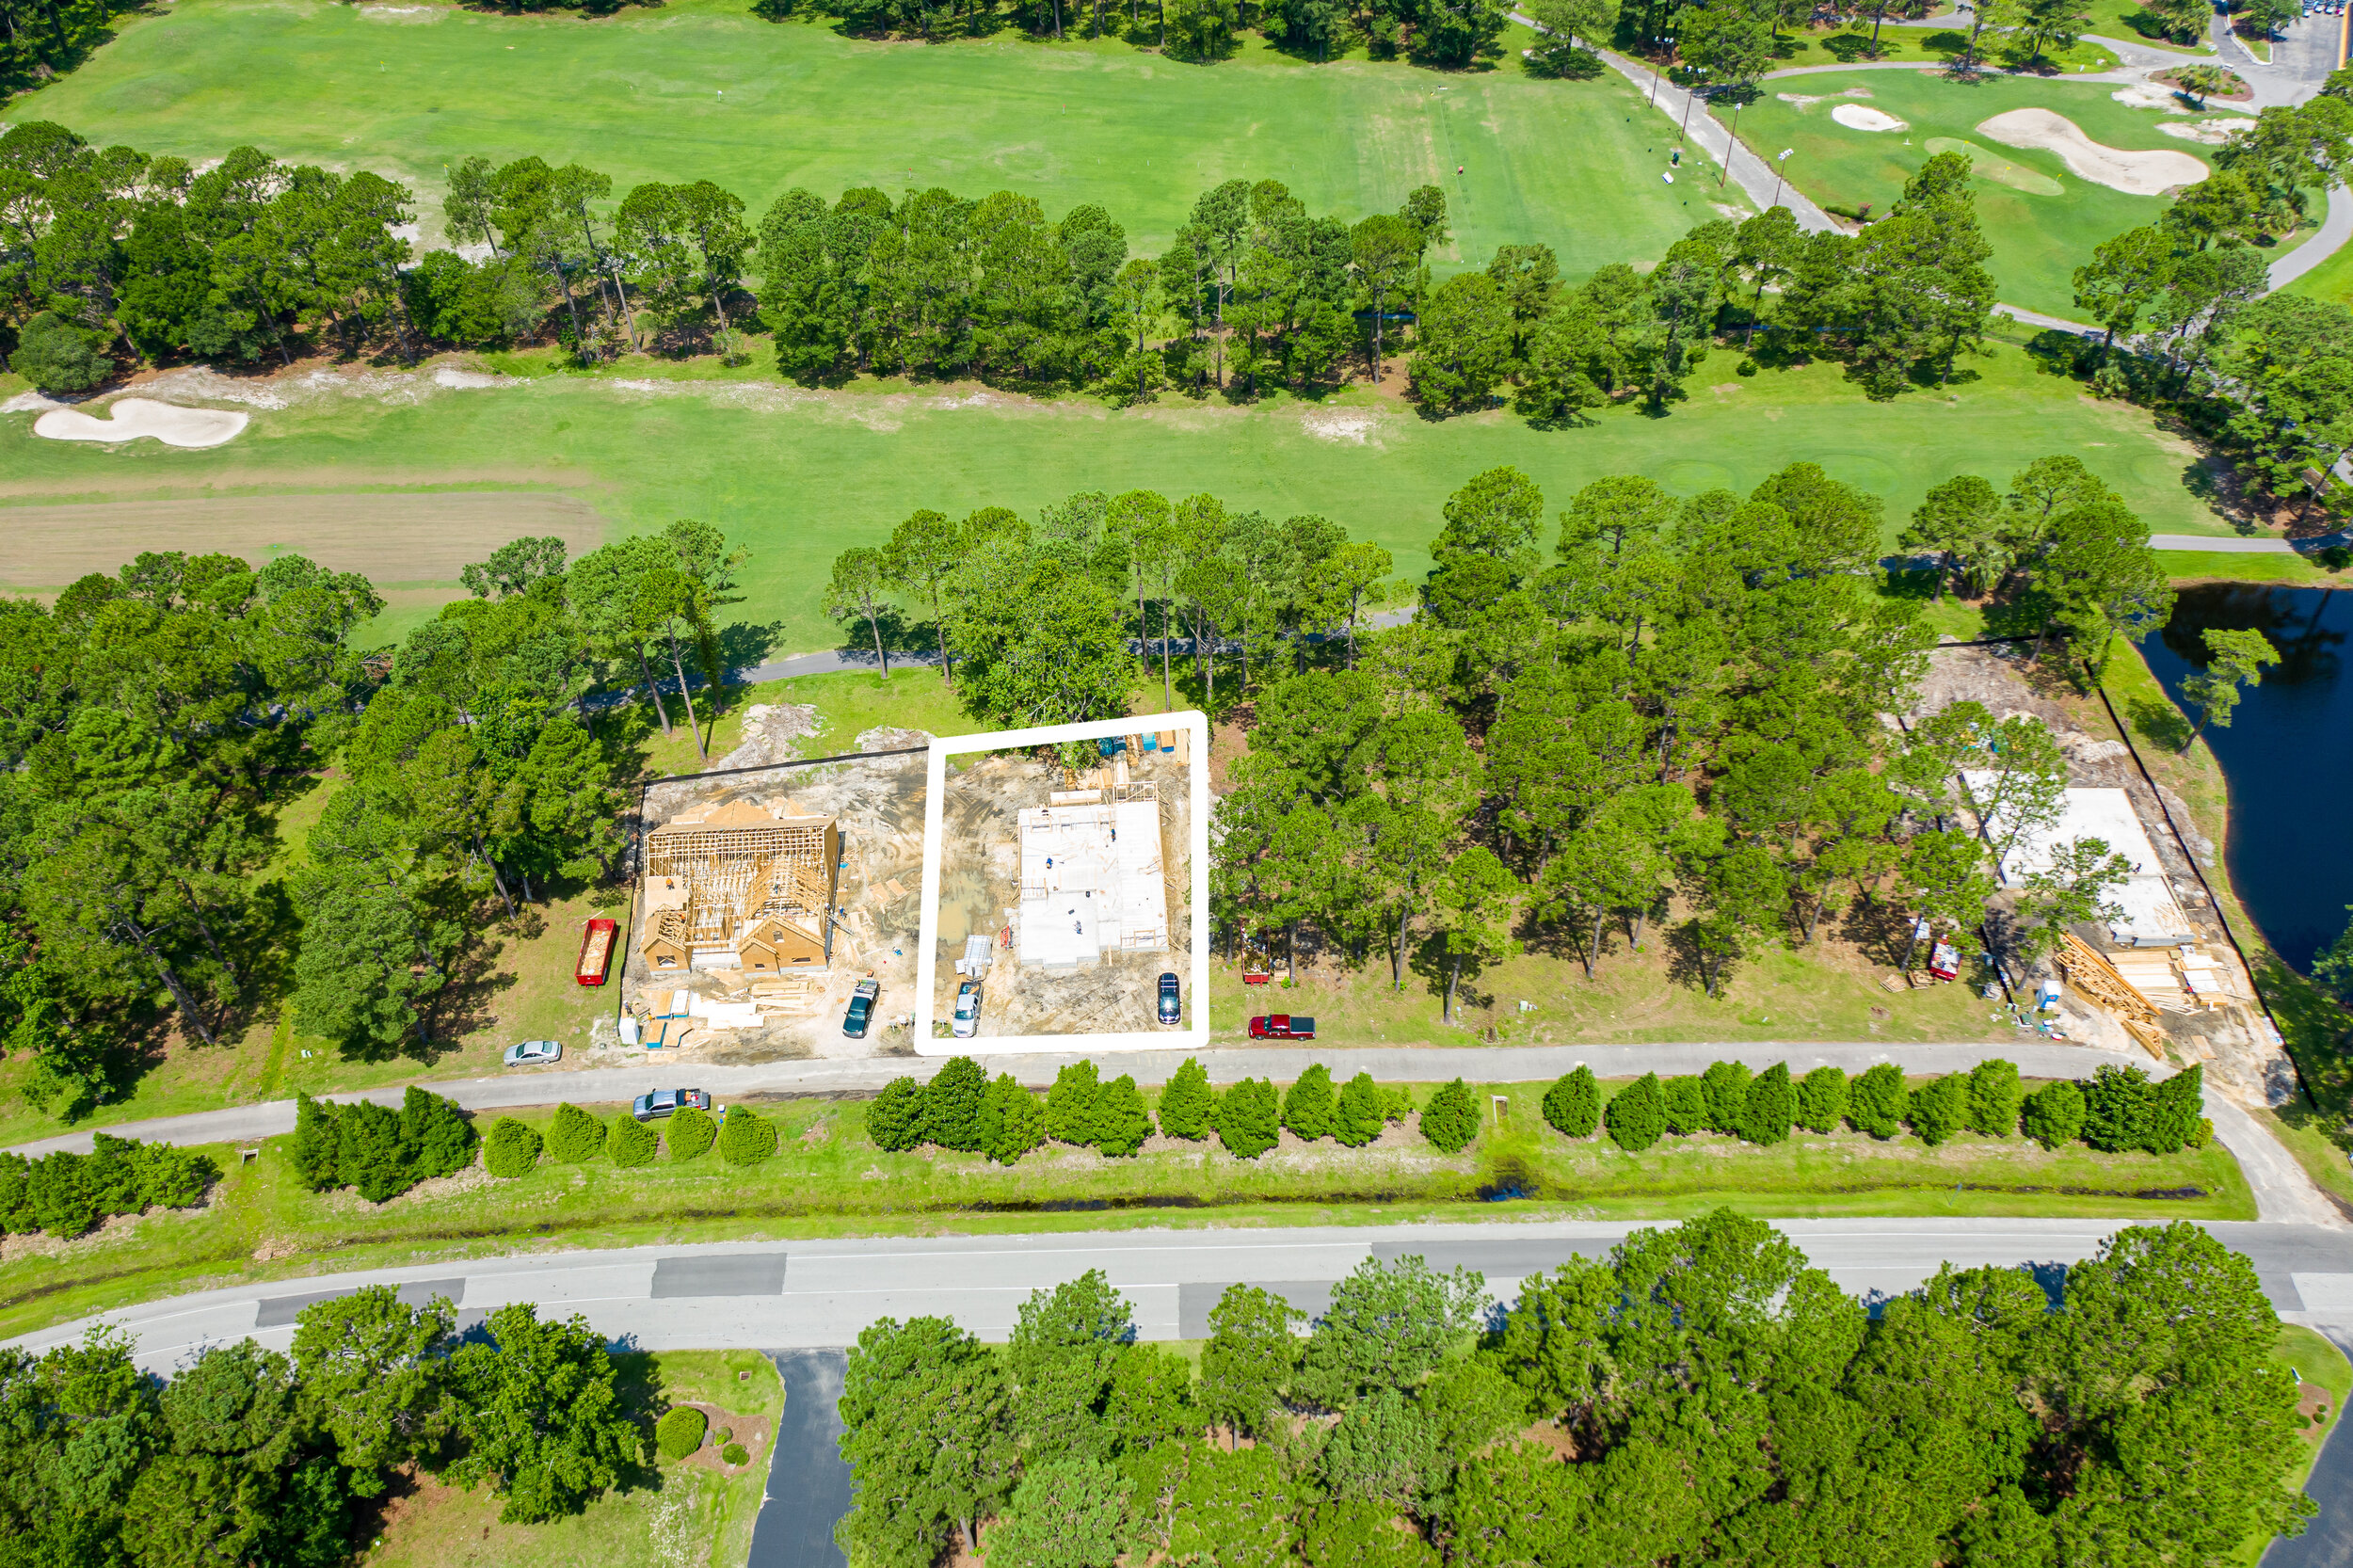 Aerial of Lot 5 Prior to Construction